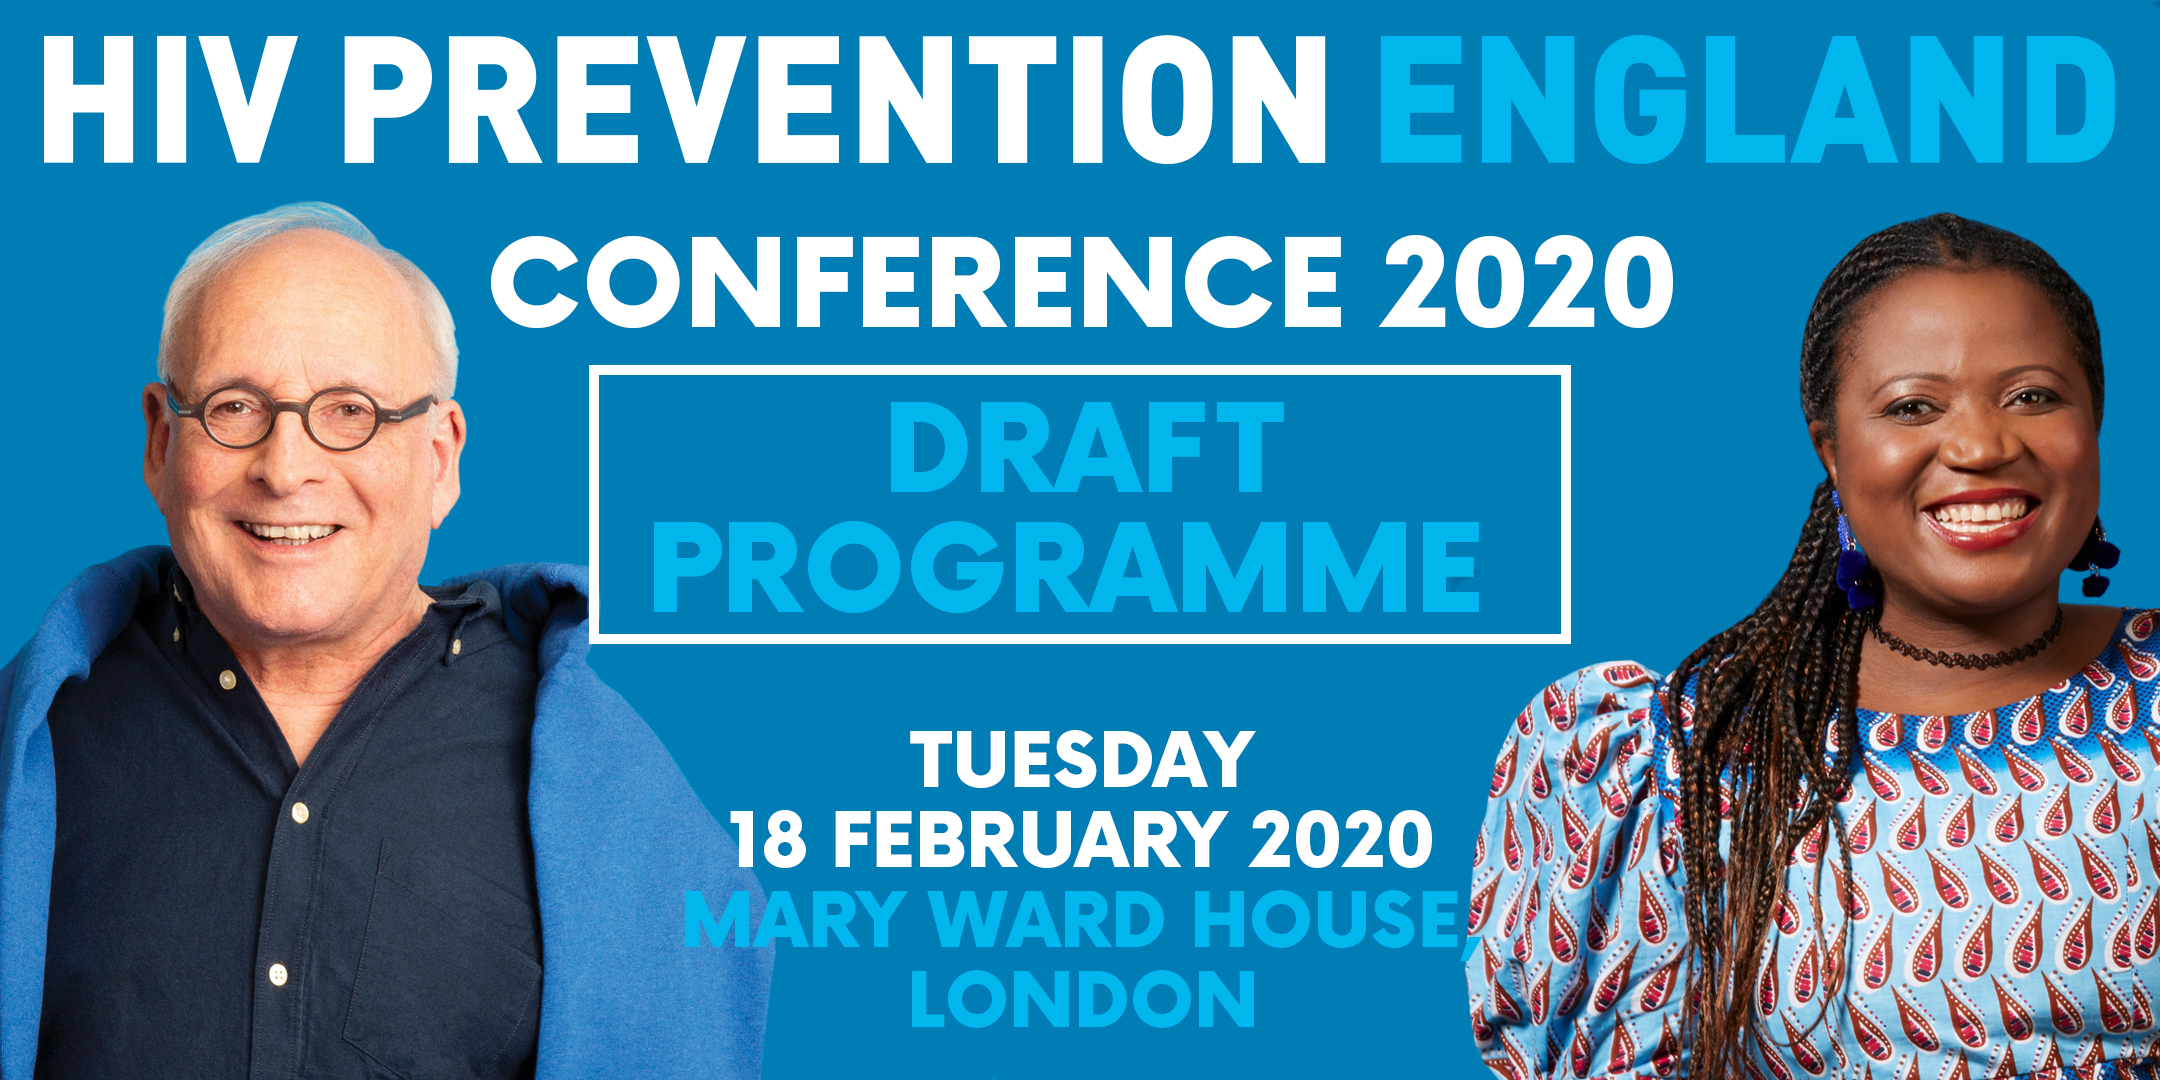 HIV Prevention England Conference 2020 draft programme